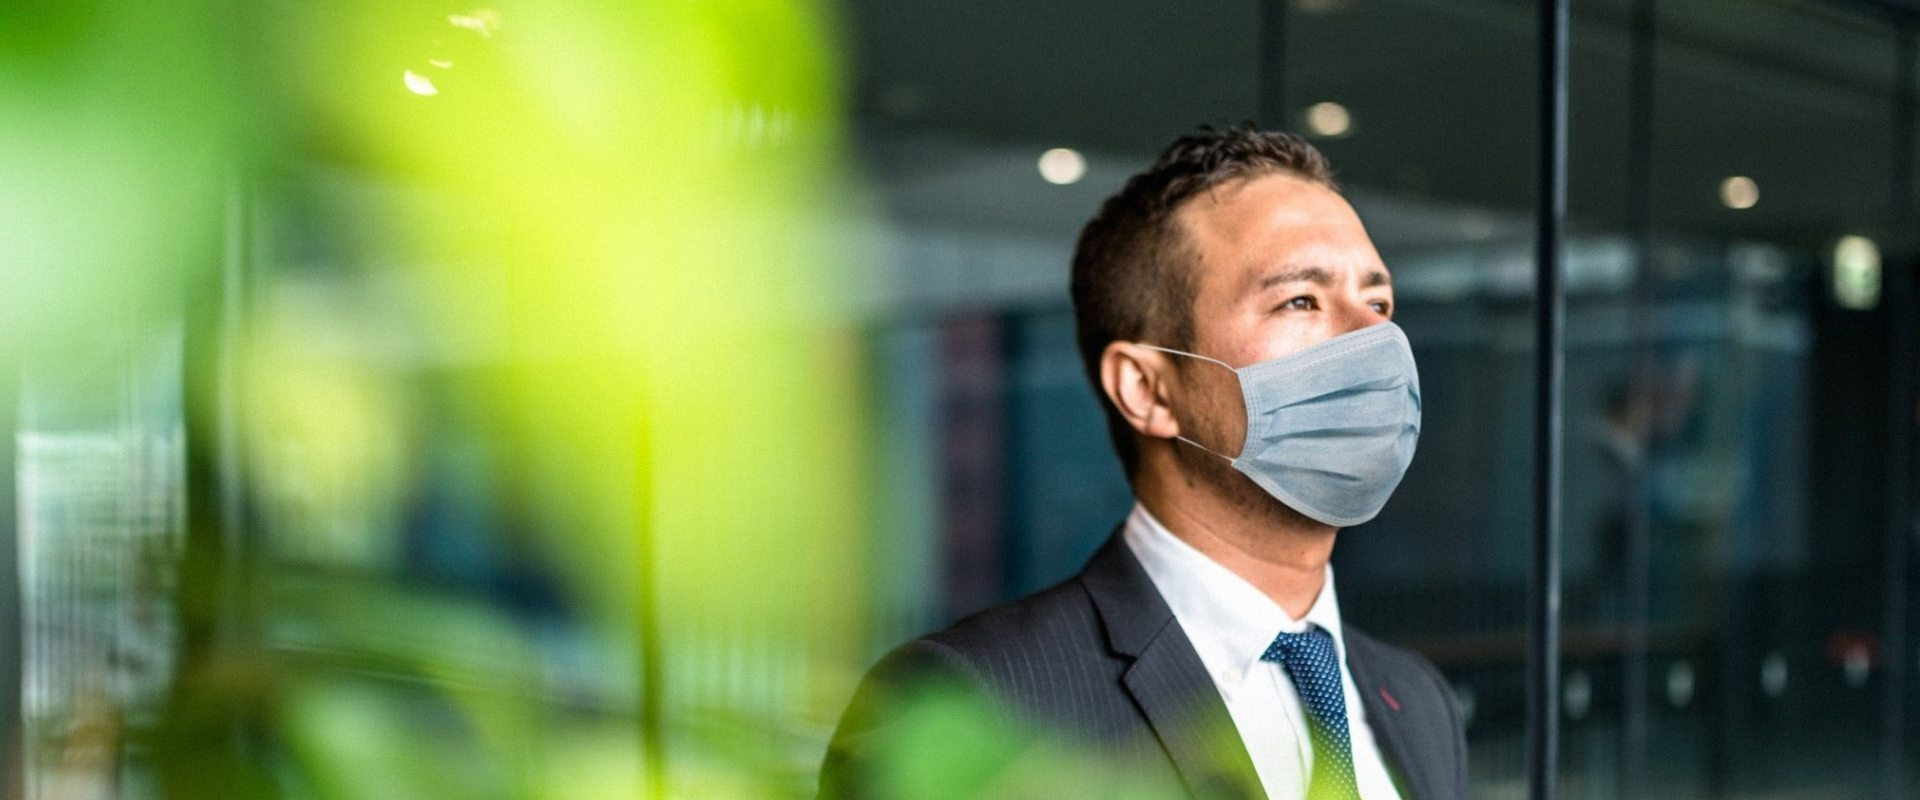 Man in medical mask standing by the window